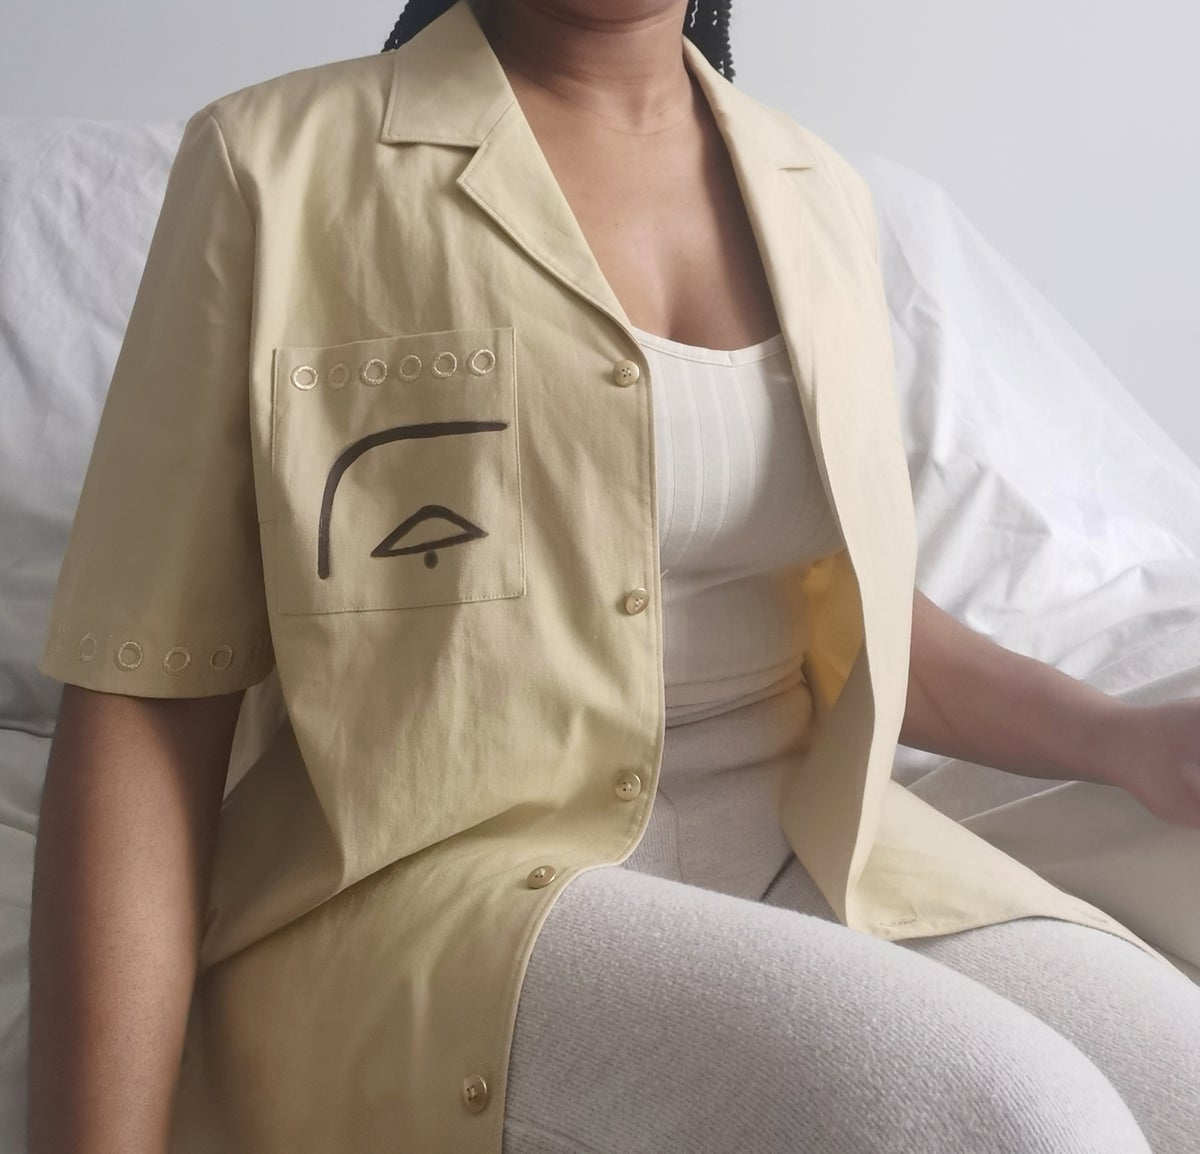 Image of cornmeal shirt